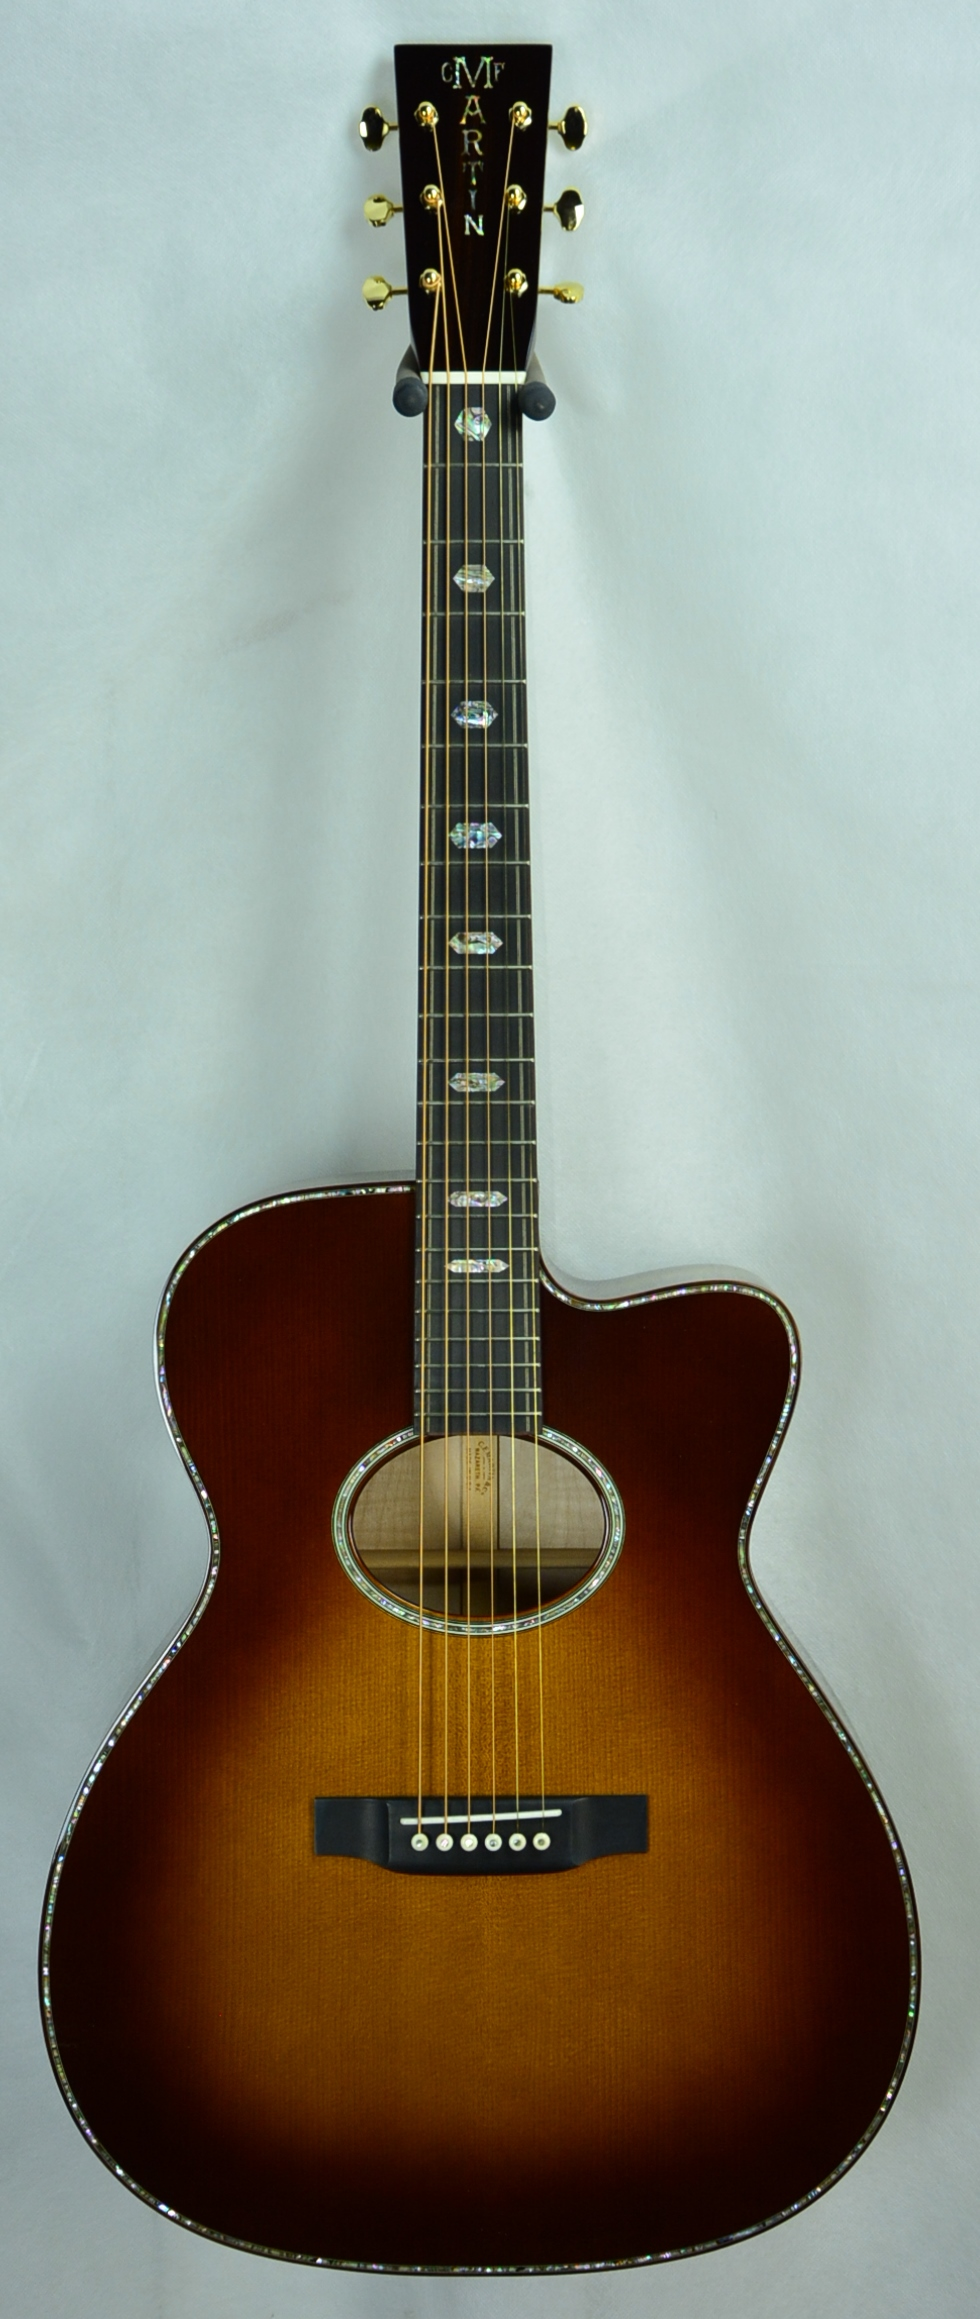 Q-2352524 S-1801530 MC Big Leaf Maple Sitka Ambertone Teardrop (2).JPG